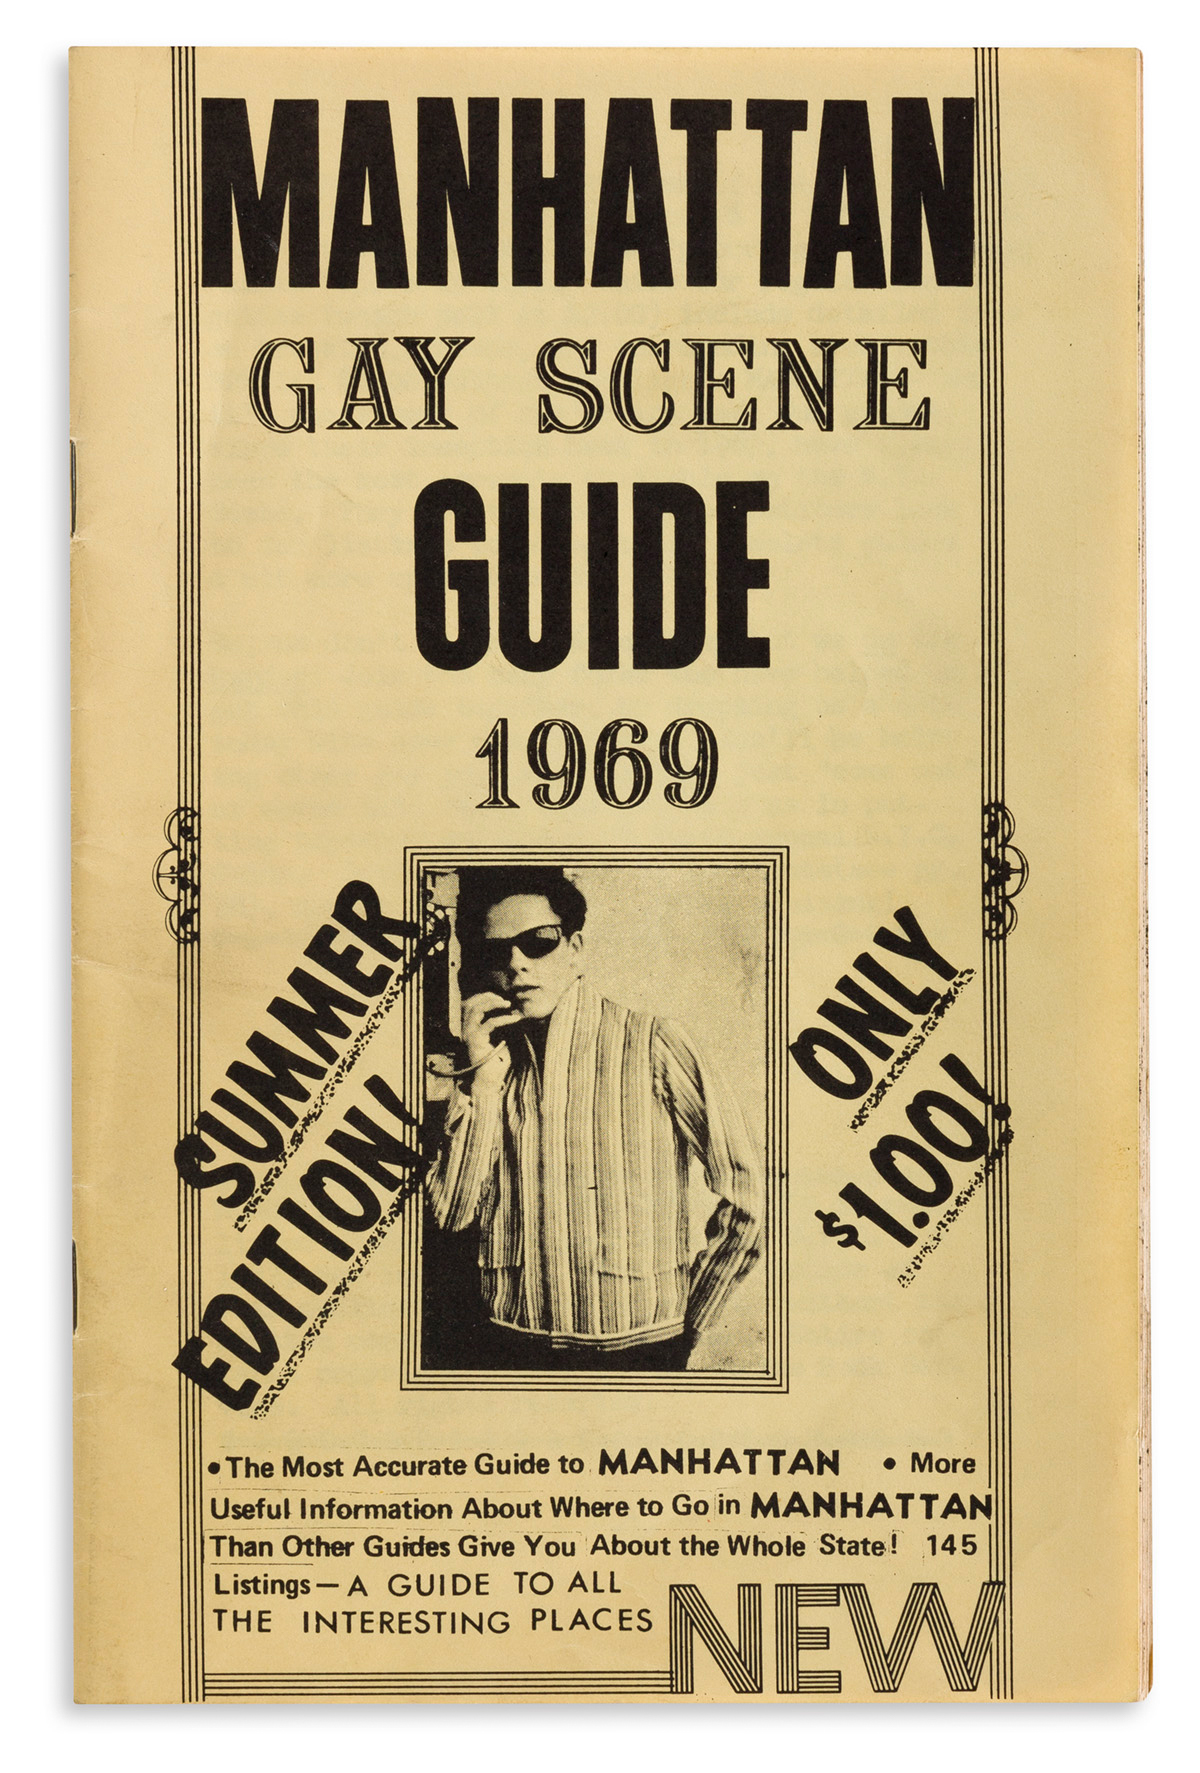 MATTACHINE-BOOK-SERVICE-Manhattan-Gay-Scene-Guide-1969-Summe